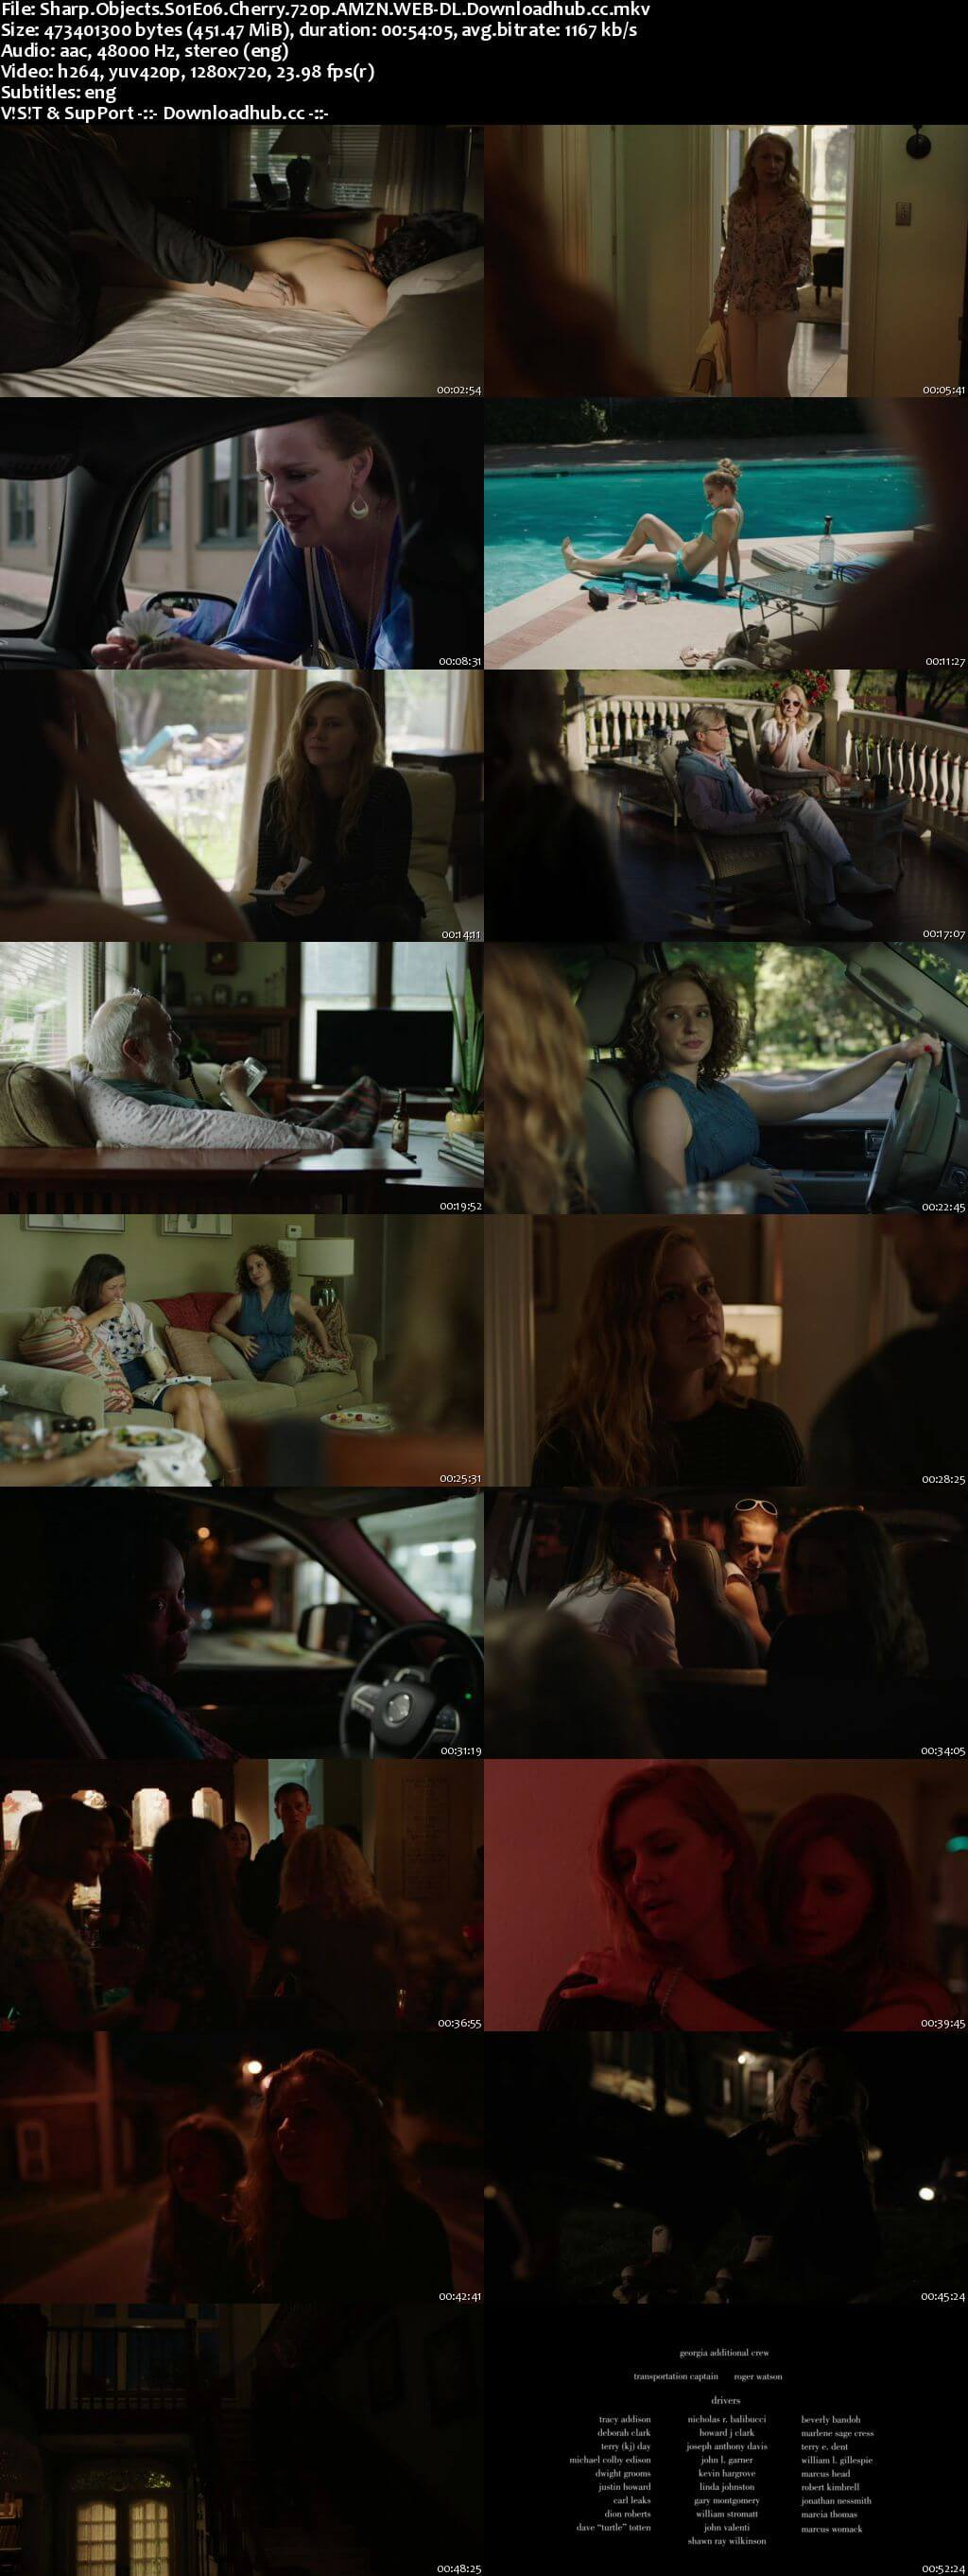 Sharp Objects S01E06 450MB WEB-DL 720p ESubs